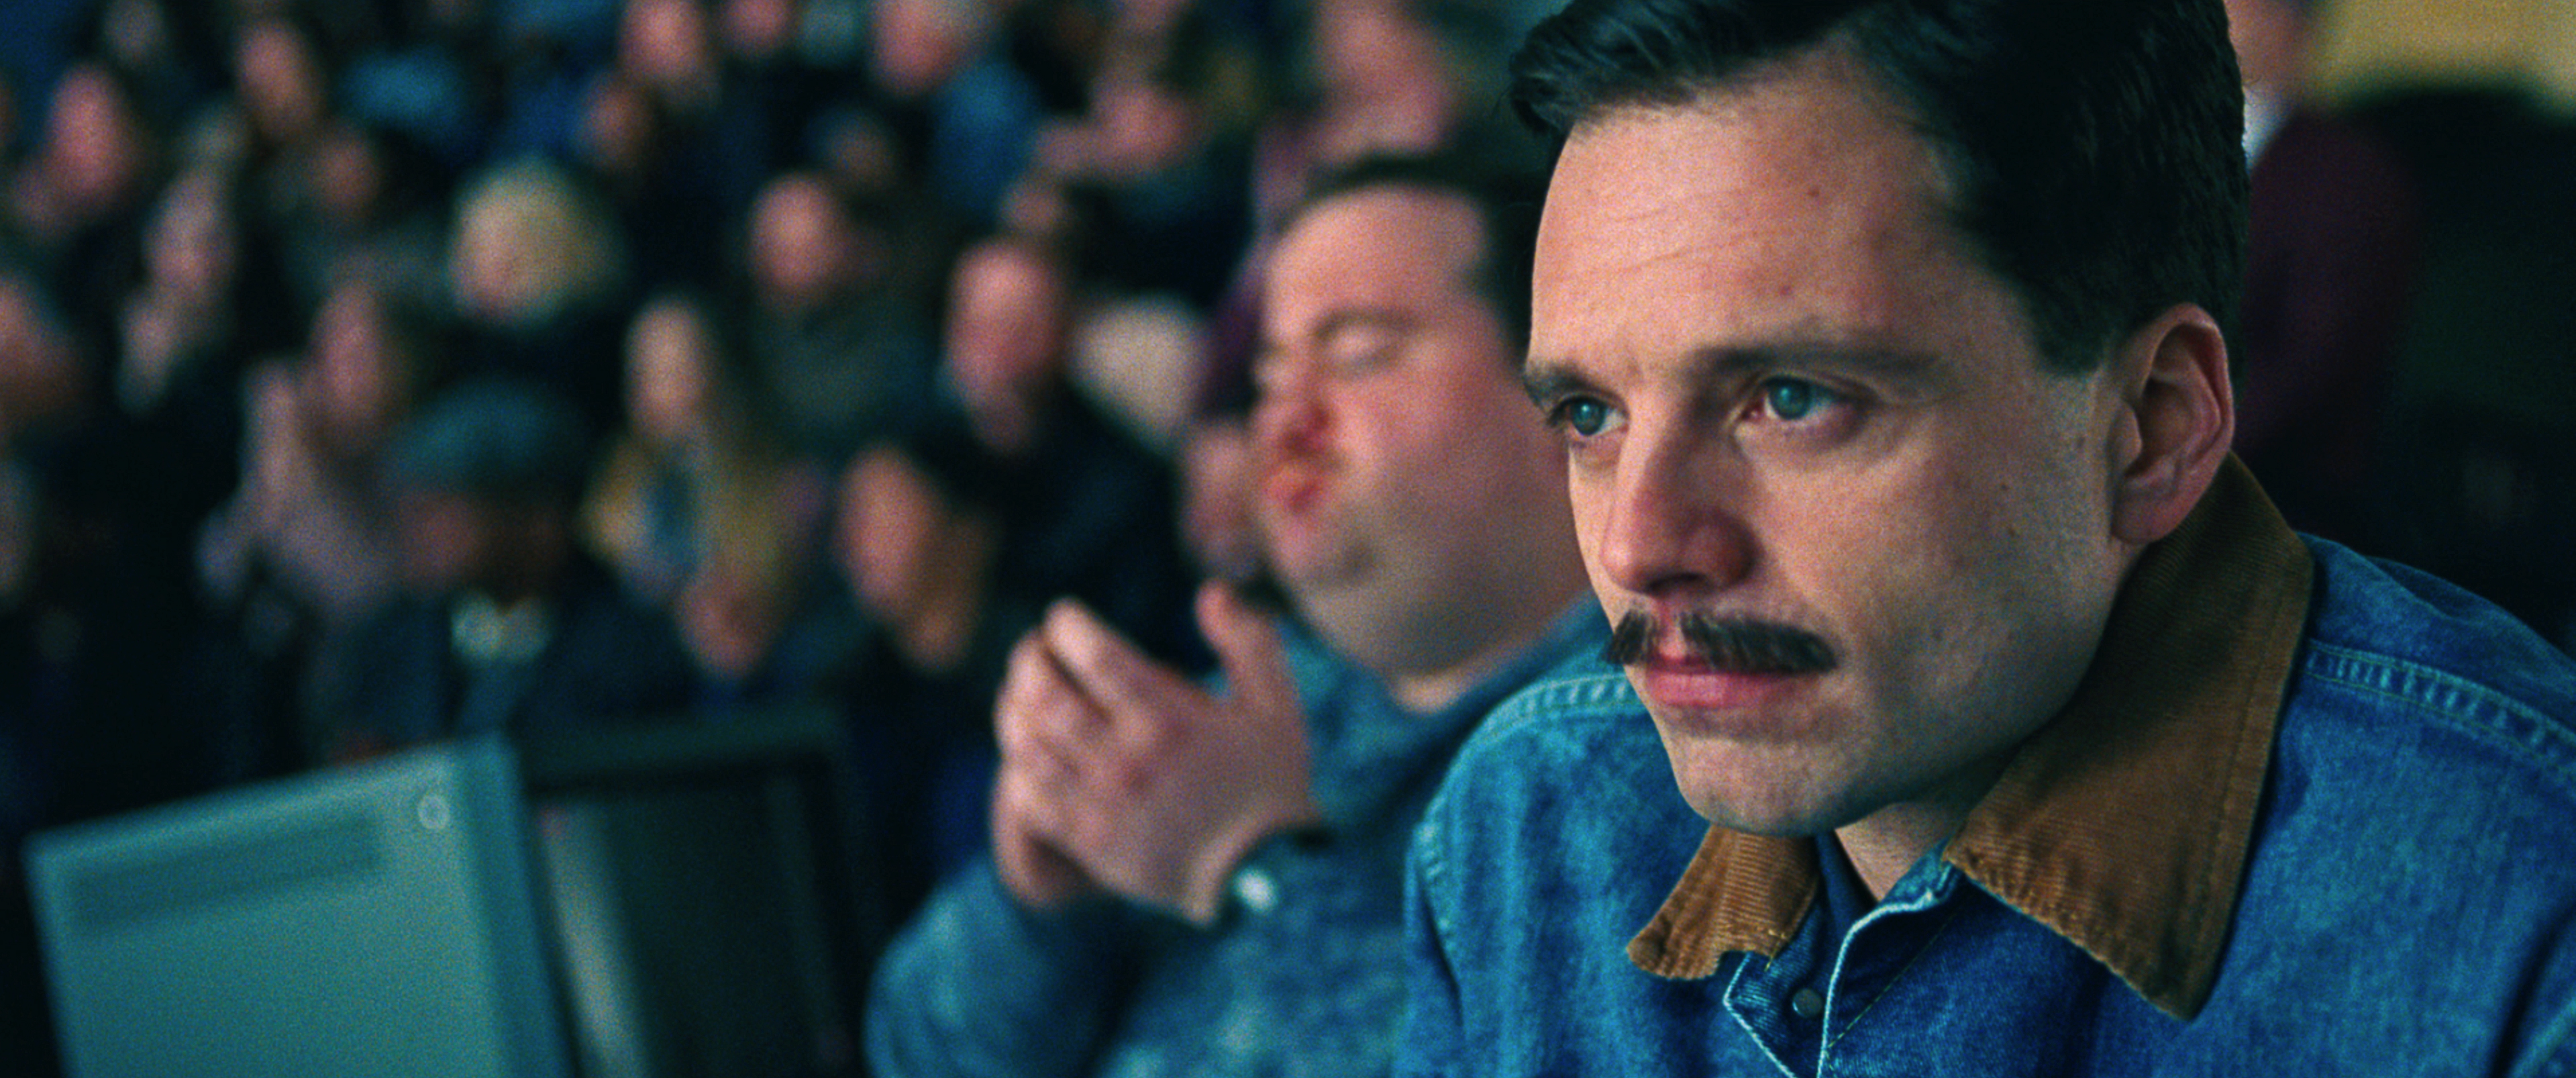 2- Jeff Gillooly (Sebastian Stan) watches a routine in I, TONYA, courtesy of NEON and 30WEST